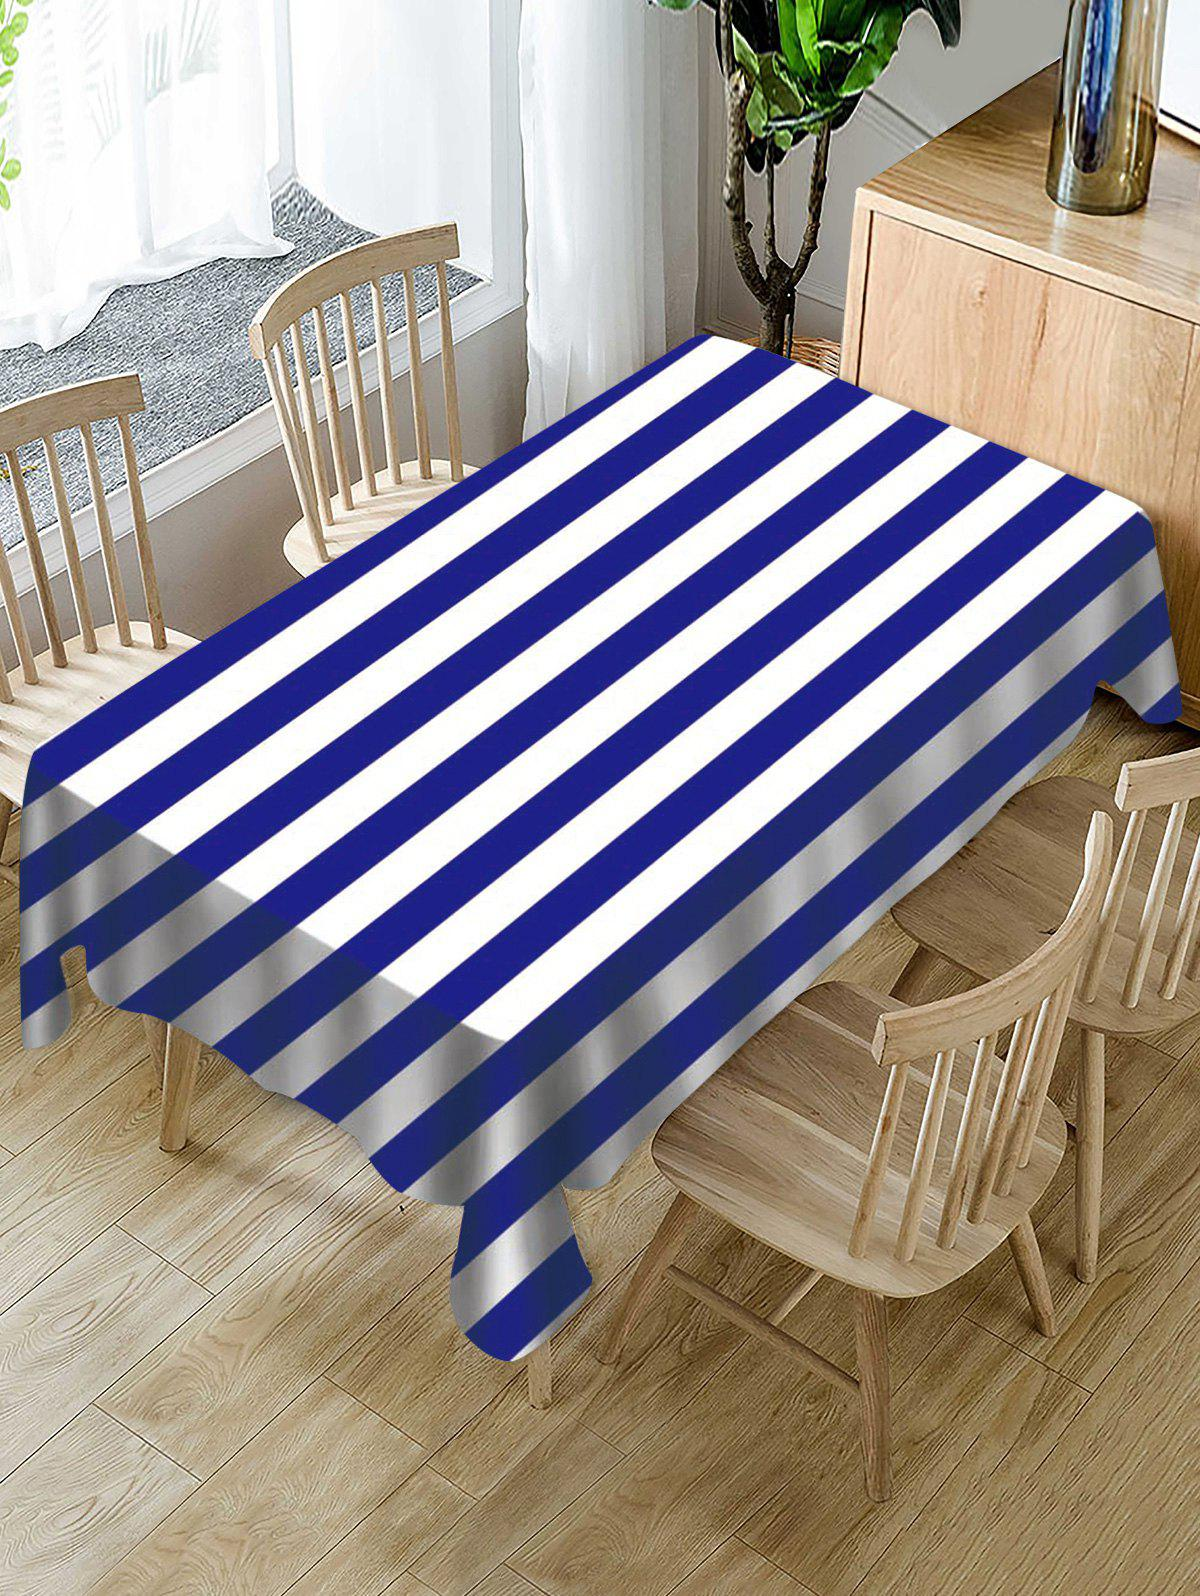 Buy Striped Print Fabric Waterproof Tablecloth